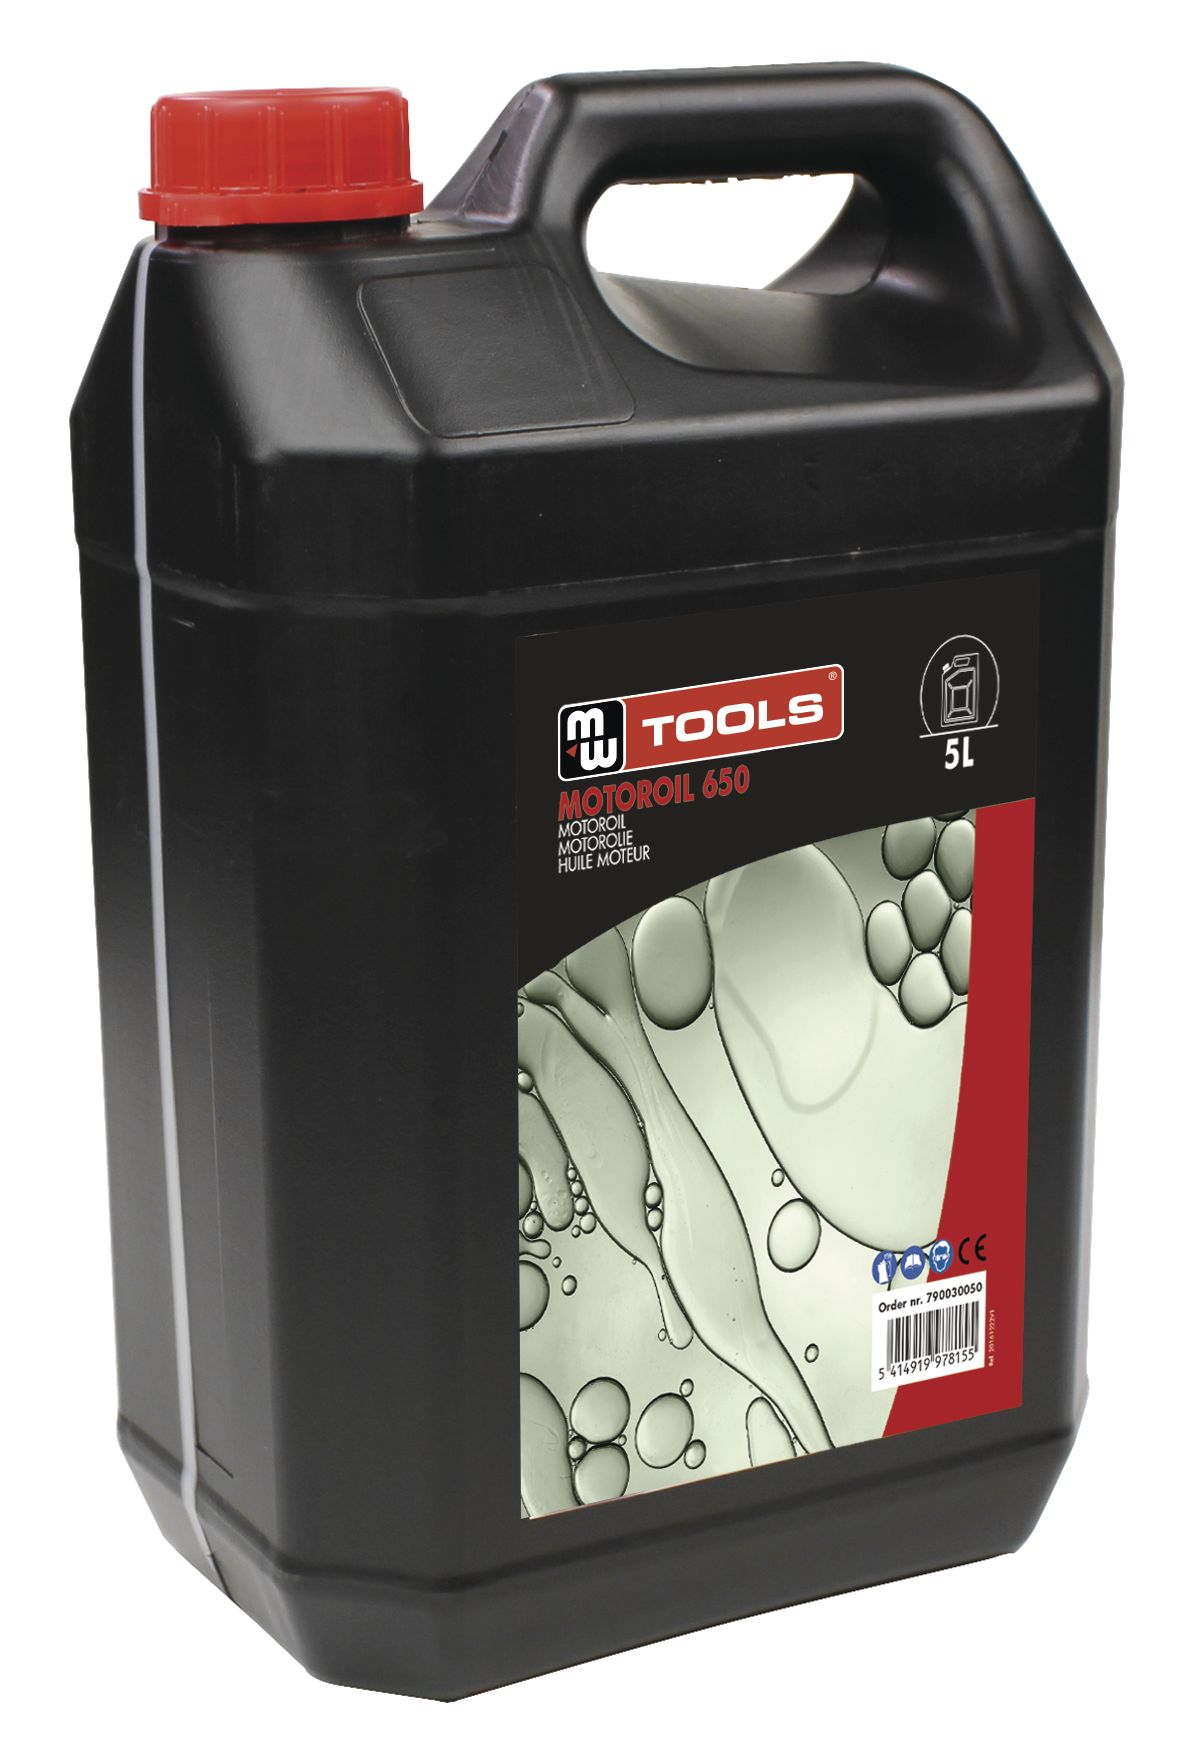 MOTOROIL 650 15W40 | Oils | Cooling & oil for machines